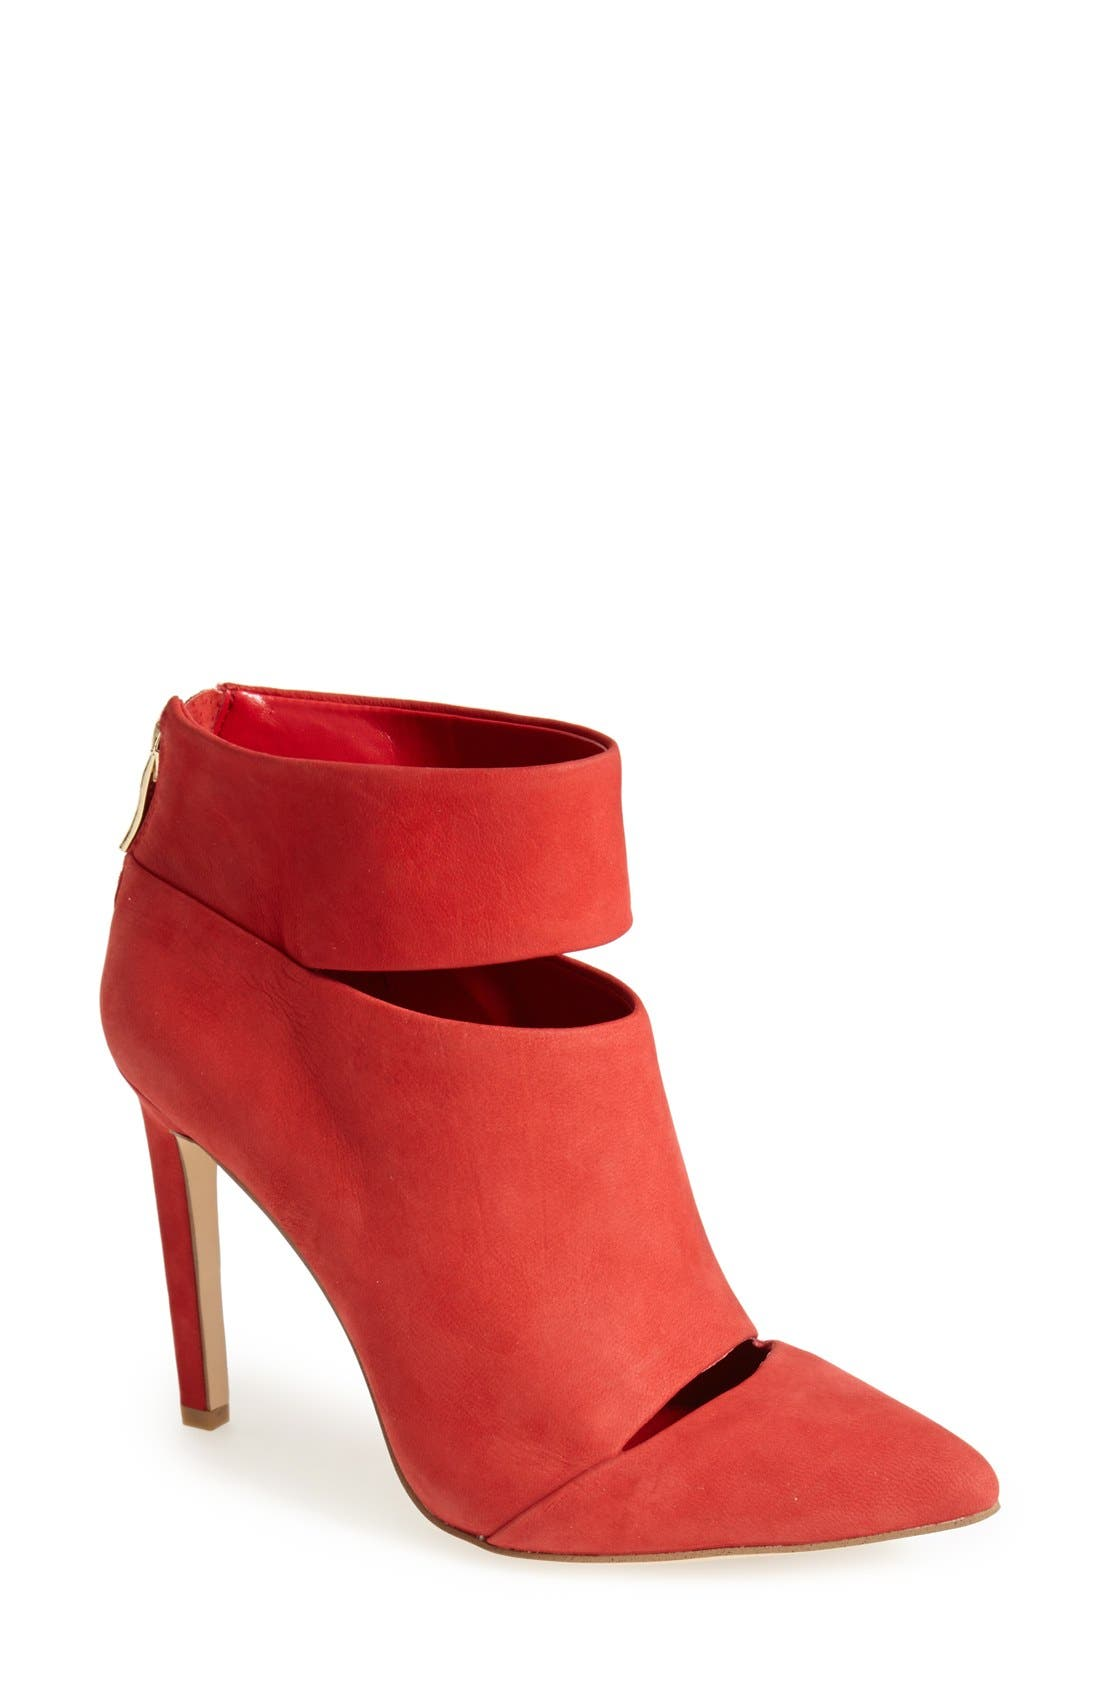 Alternate Image 1 Selected - BCBGeneration 'Carolyn' Cutout Suede Bootie (Women)